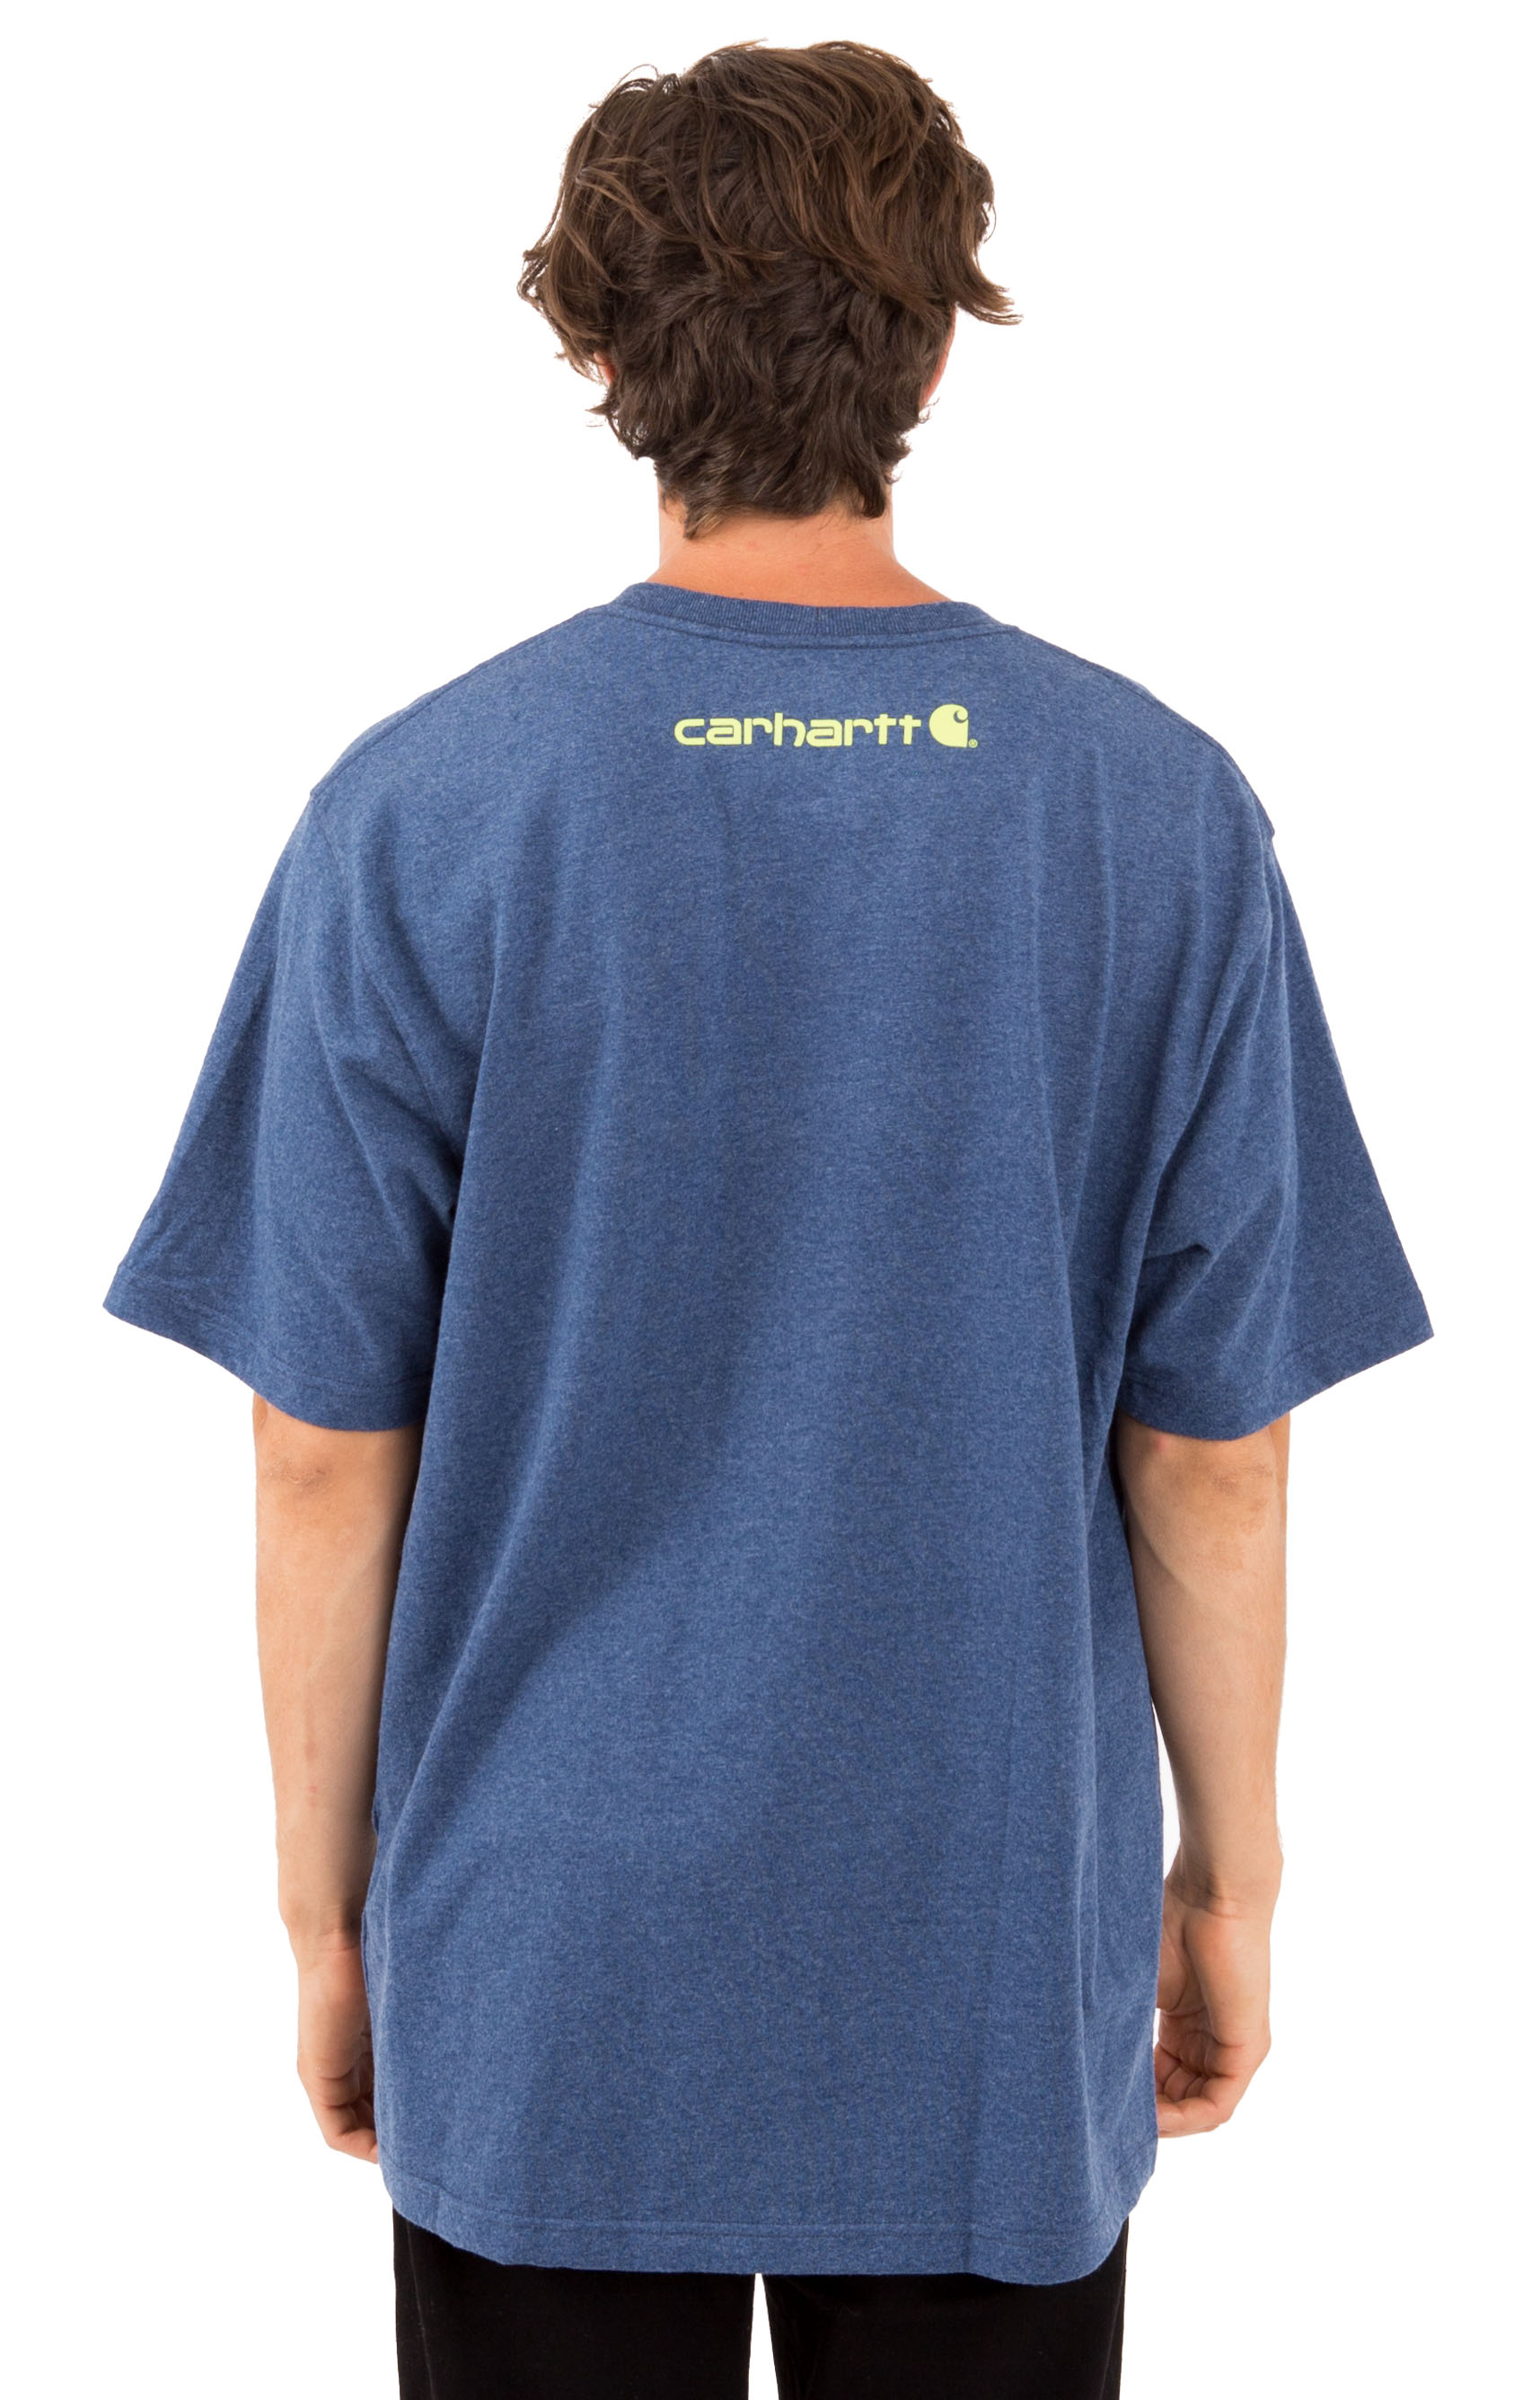 (K195) S/S Signature Logo T-Shirt - Dark Cobalt Blue Heather 3